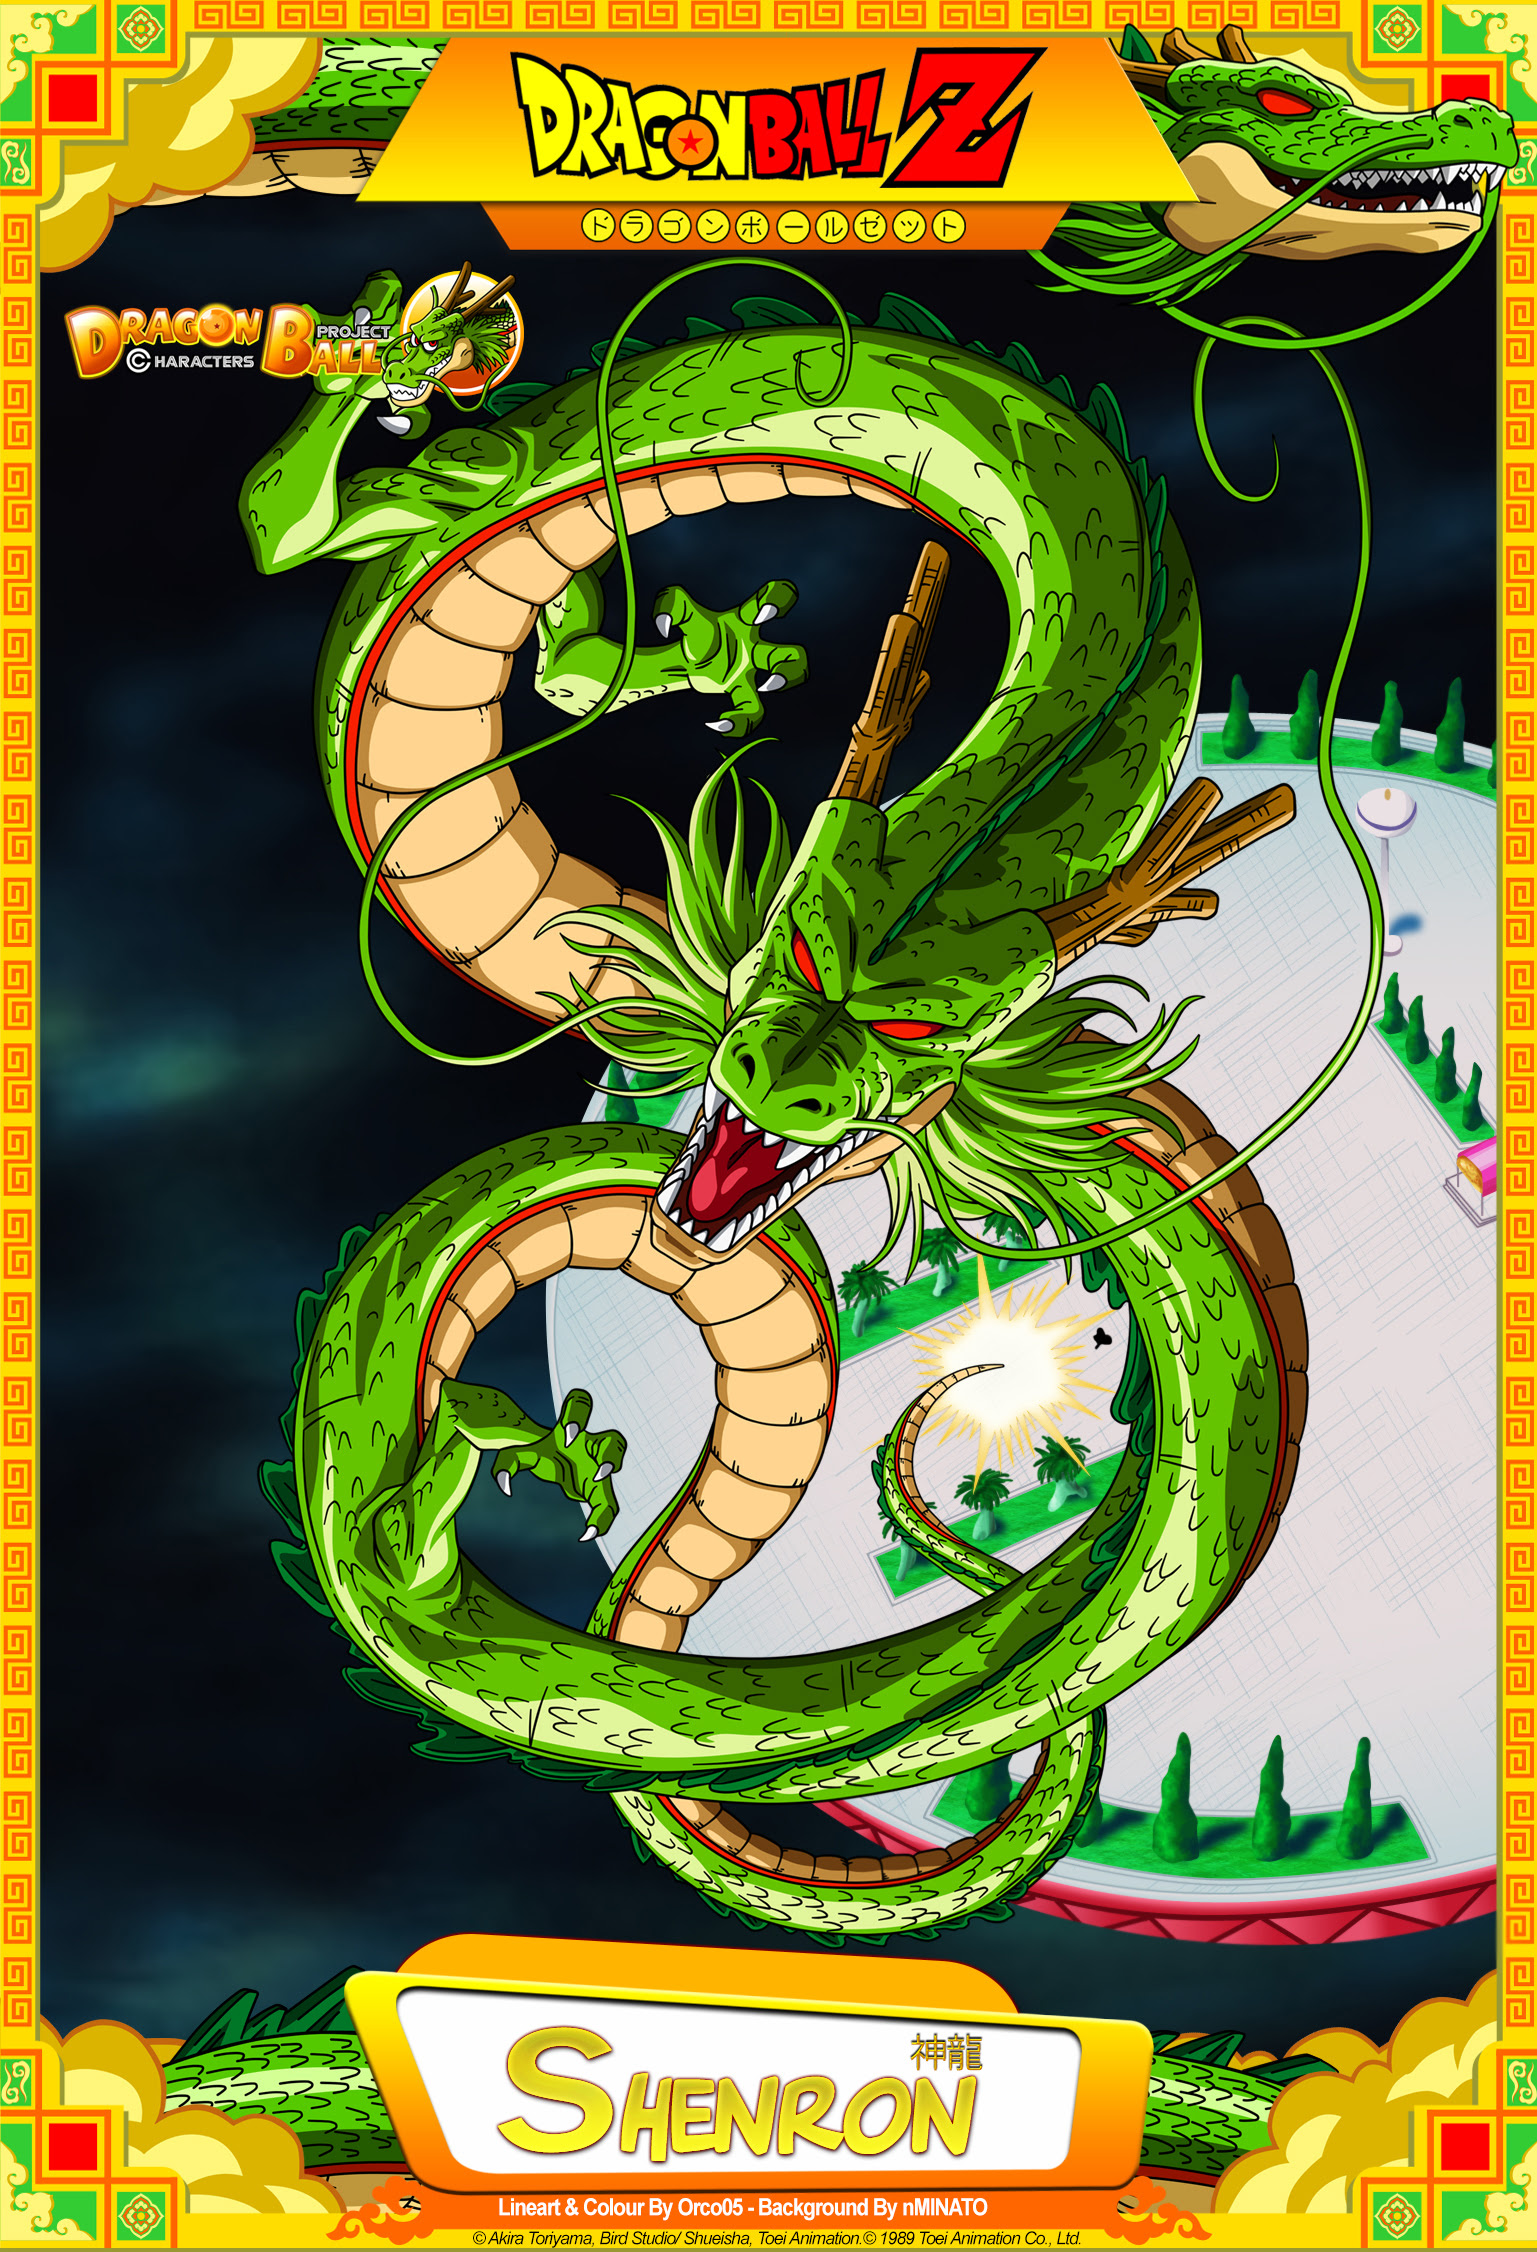 Dragon Ball Z Wallpaper Dragon Ball Z Shenron By Dbcproject On